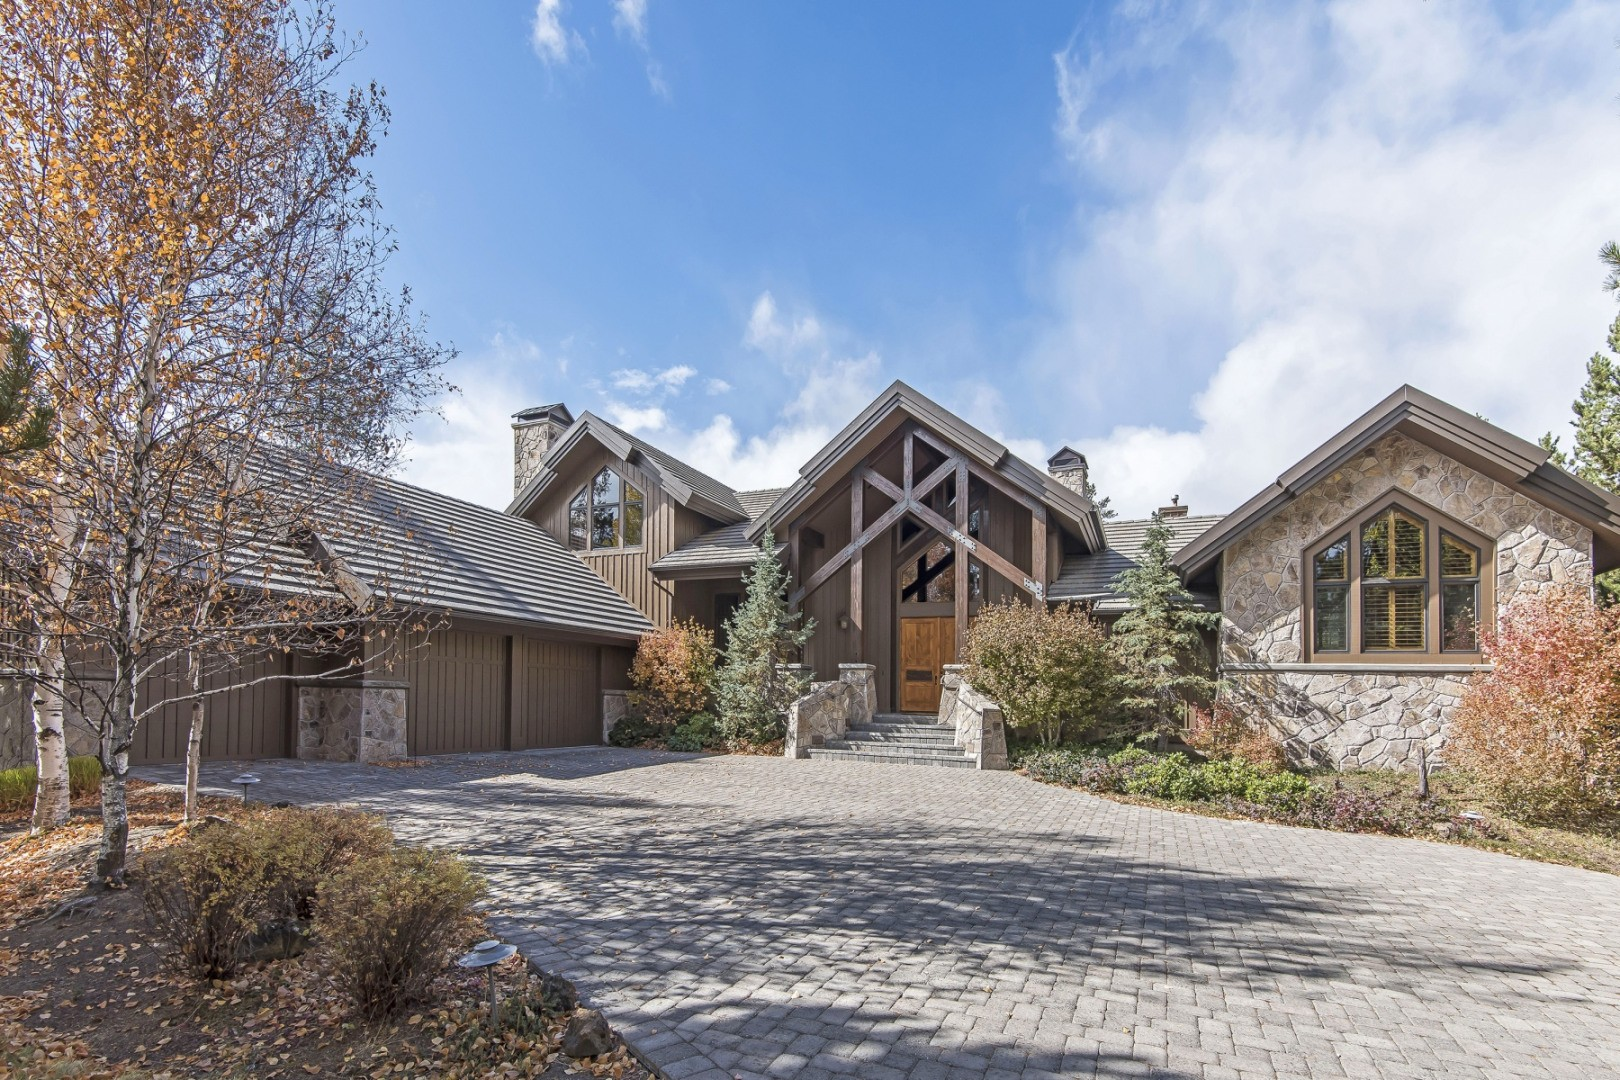 House For Sale In Bend Oregon